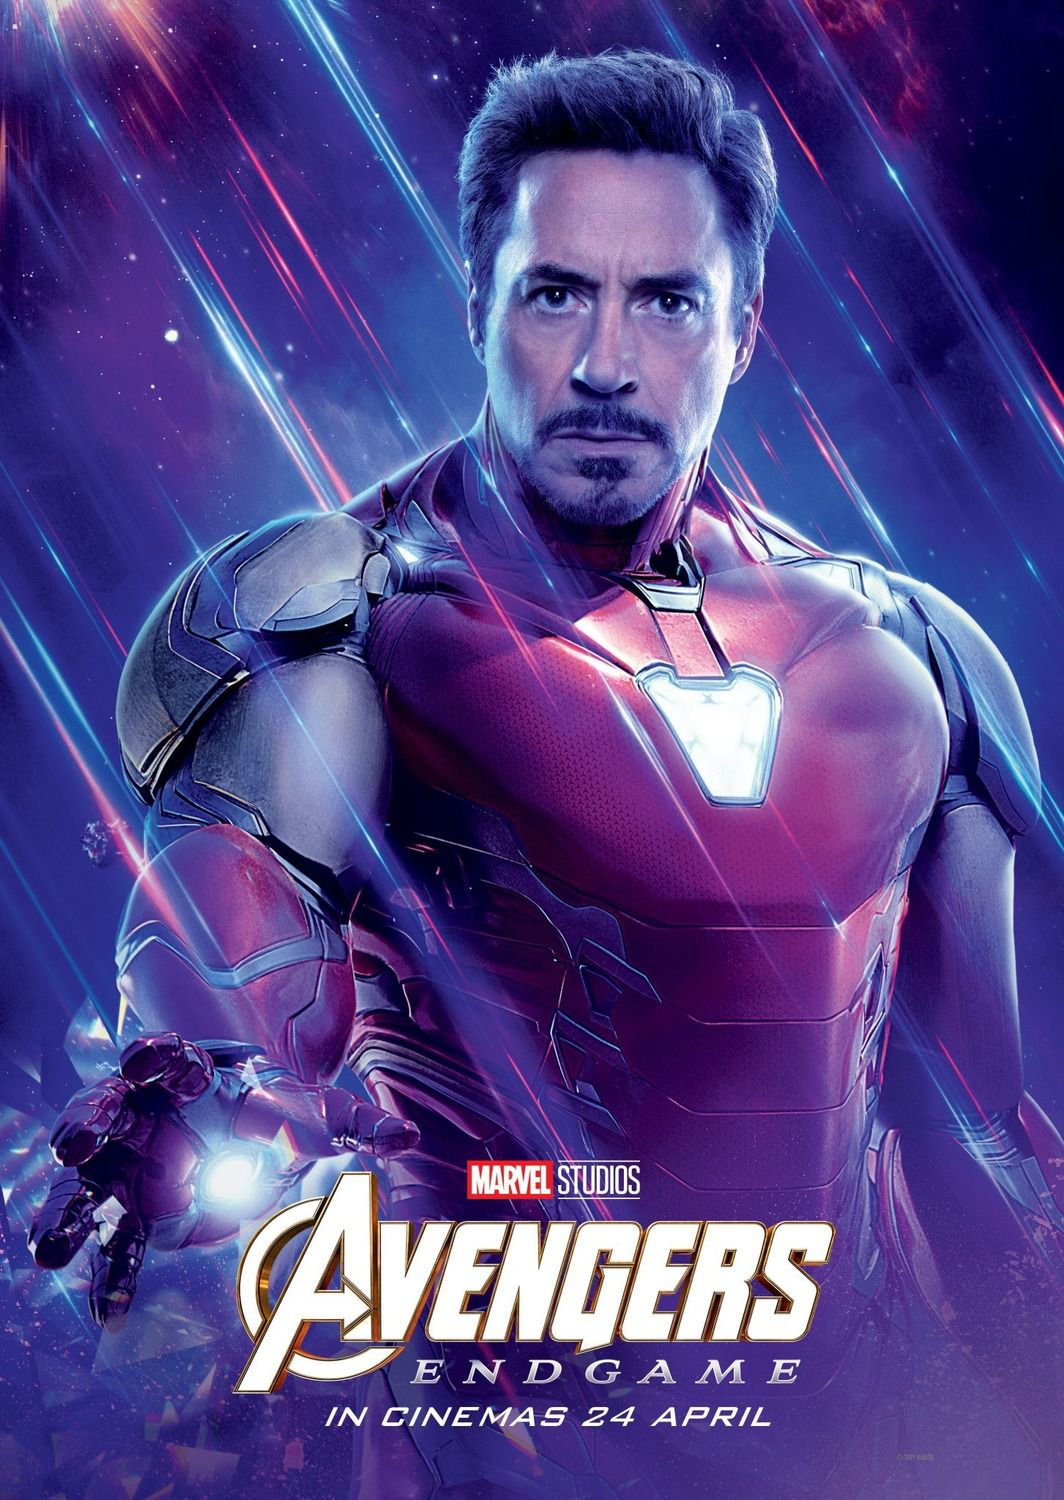 Robert Downey Jr. as Tony Stark Iron Man